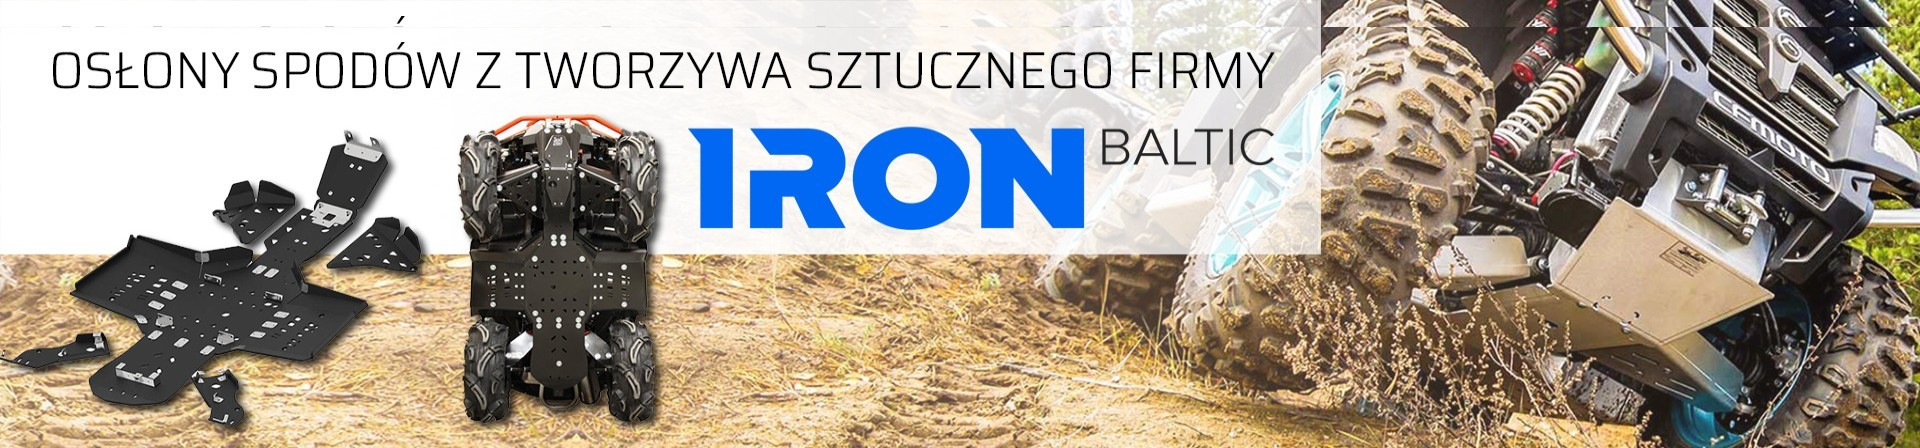 iron baltoc